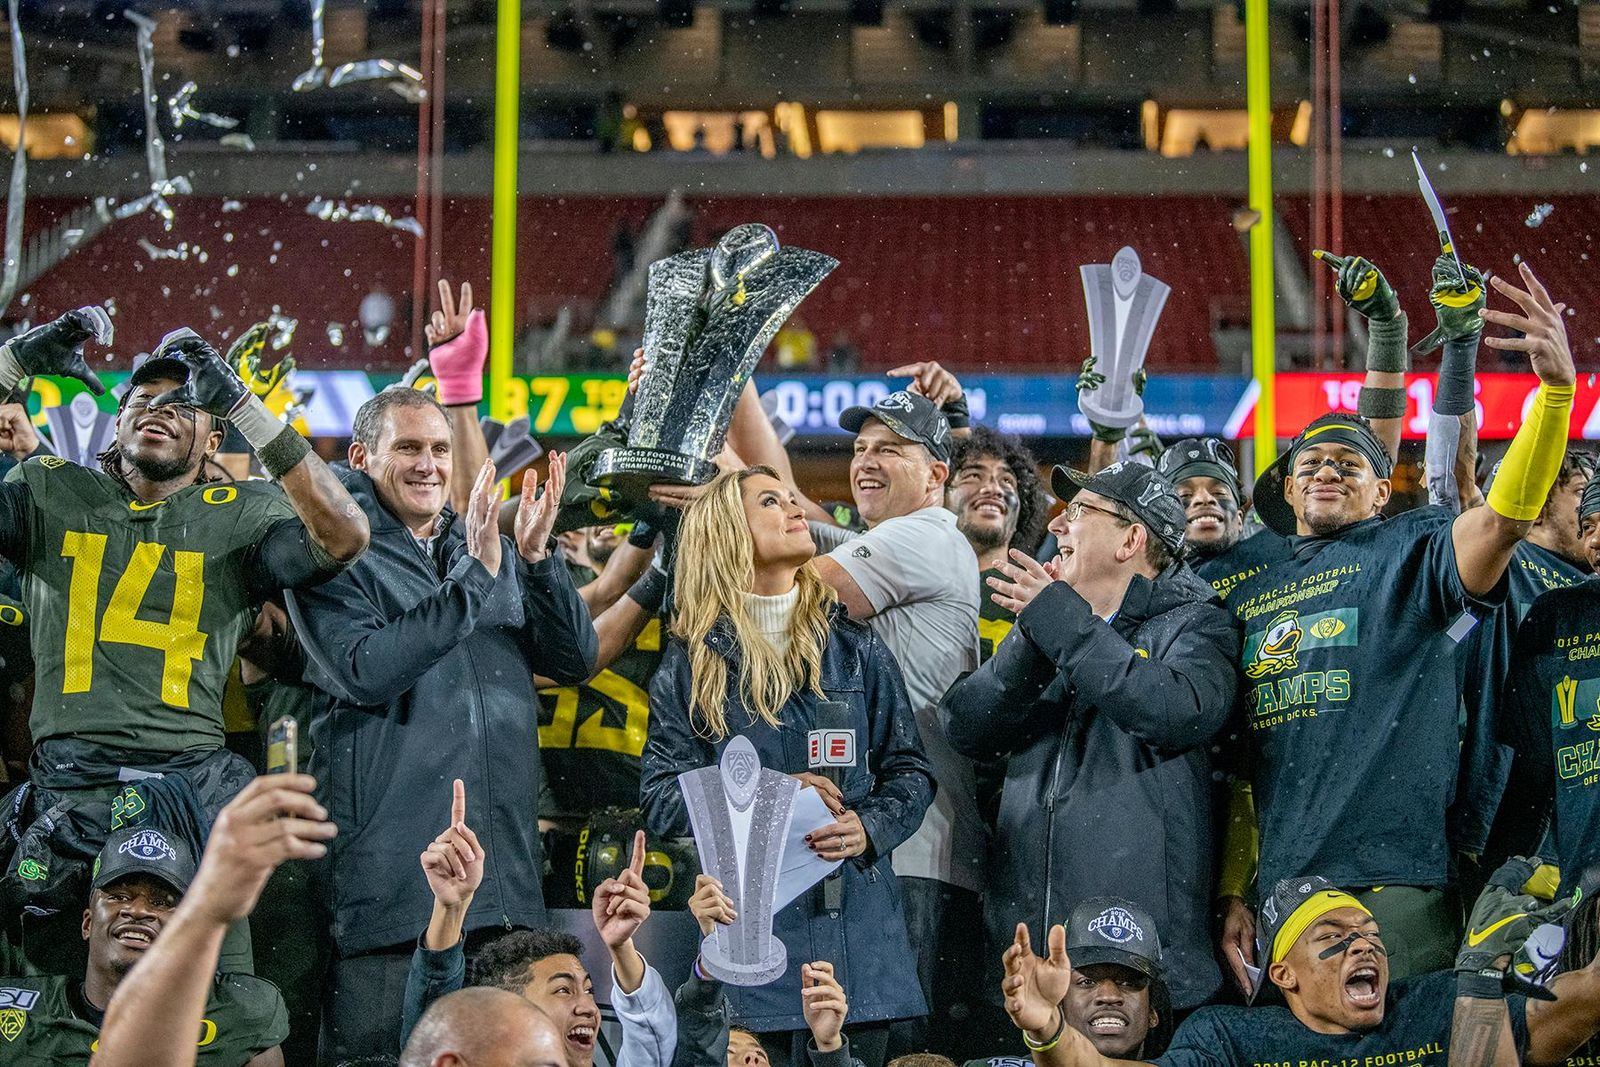 Oregon's head coach Mario Cristoball hoisting up the PAC-12 championship after an impressive victory.  The University of Oregon Ducks defeated the University of Utah Utes 37-15 for the Pac 12 Championship Friday night at Levi's Stadium. Oregon's running back CJ Verdell, #7, rushed for 203 all-purpose yard along with three touchdowns for the night. Verdell was named the games M-V-P for his performace. Oregon's safey Brady Breeze, #25, contributed 9 tackles and one interception. Oregon's defensive end Kayvon Thibodeaux, #5, sacked Utah's quarterback Tyler Huntly, #1, for a total of three times. Oregon's quarterback Justin Herbert, #10, passed for 193 yards with one touchdown. The Oregon Ducks will represent the Pac 12 for the upcoming Rose Bowl game in the new year. Photo by Jeffrey Price